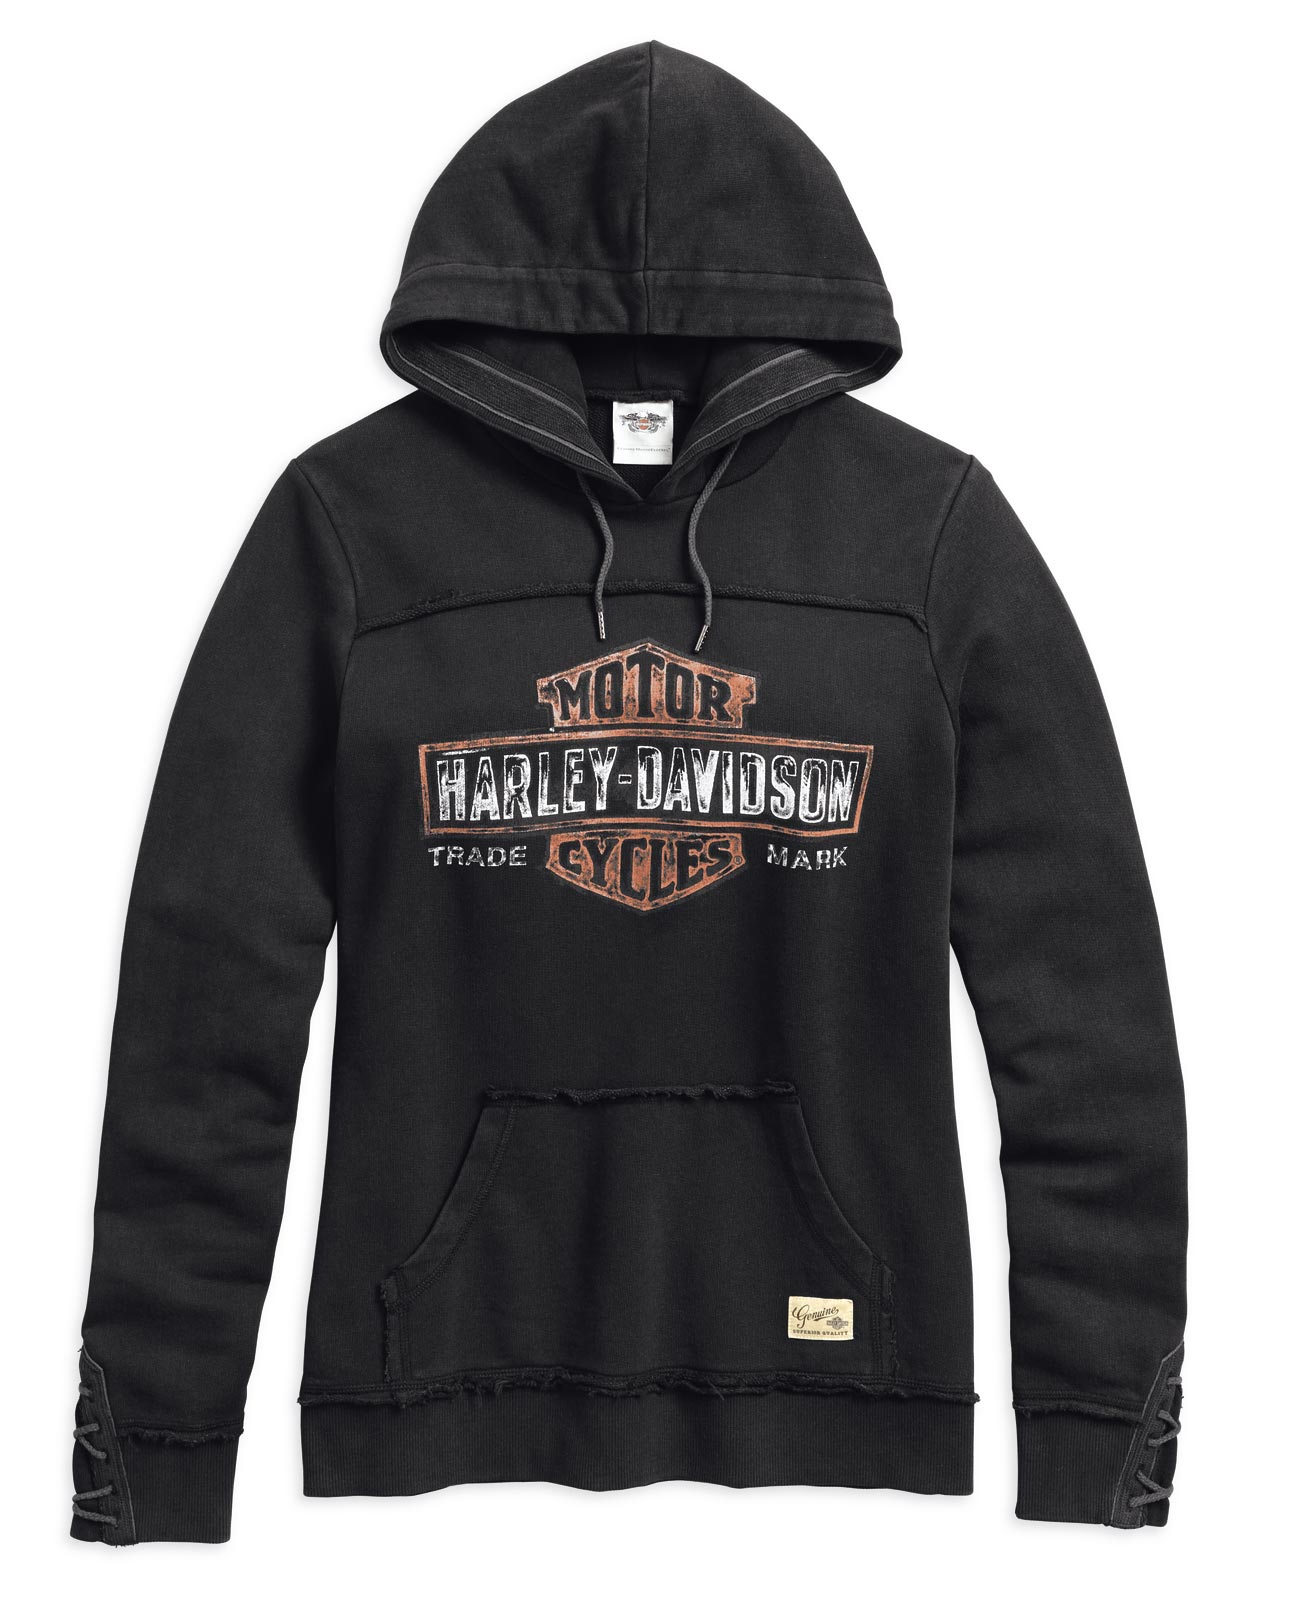 99100 17vw harley davidson women 39 s genuine pullover hoodie. Black Bedroom Furniture Sets. Home Design Ideas